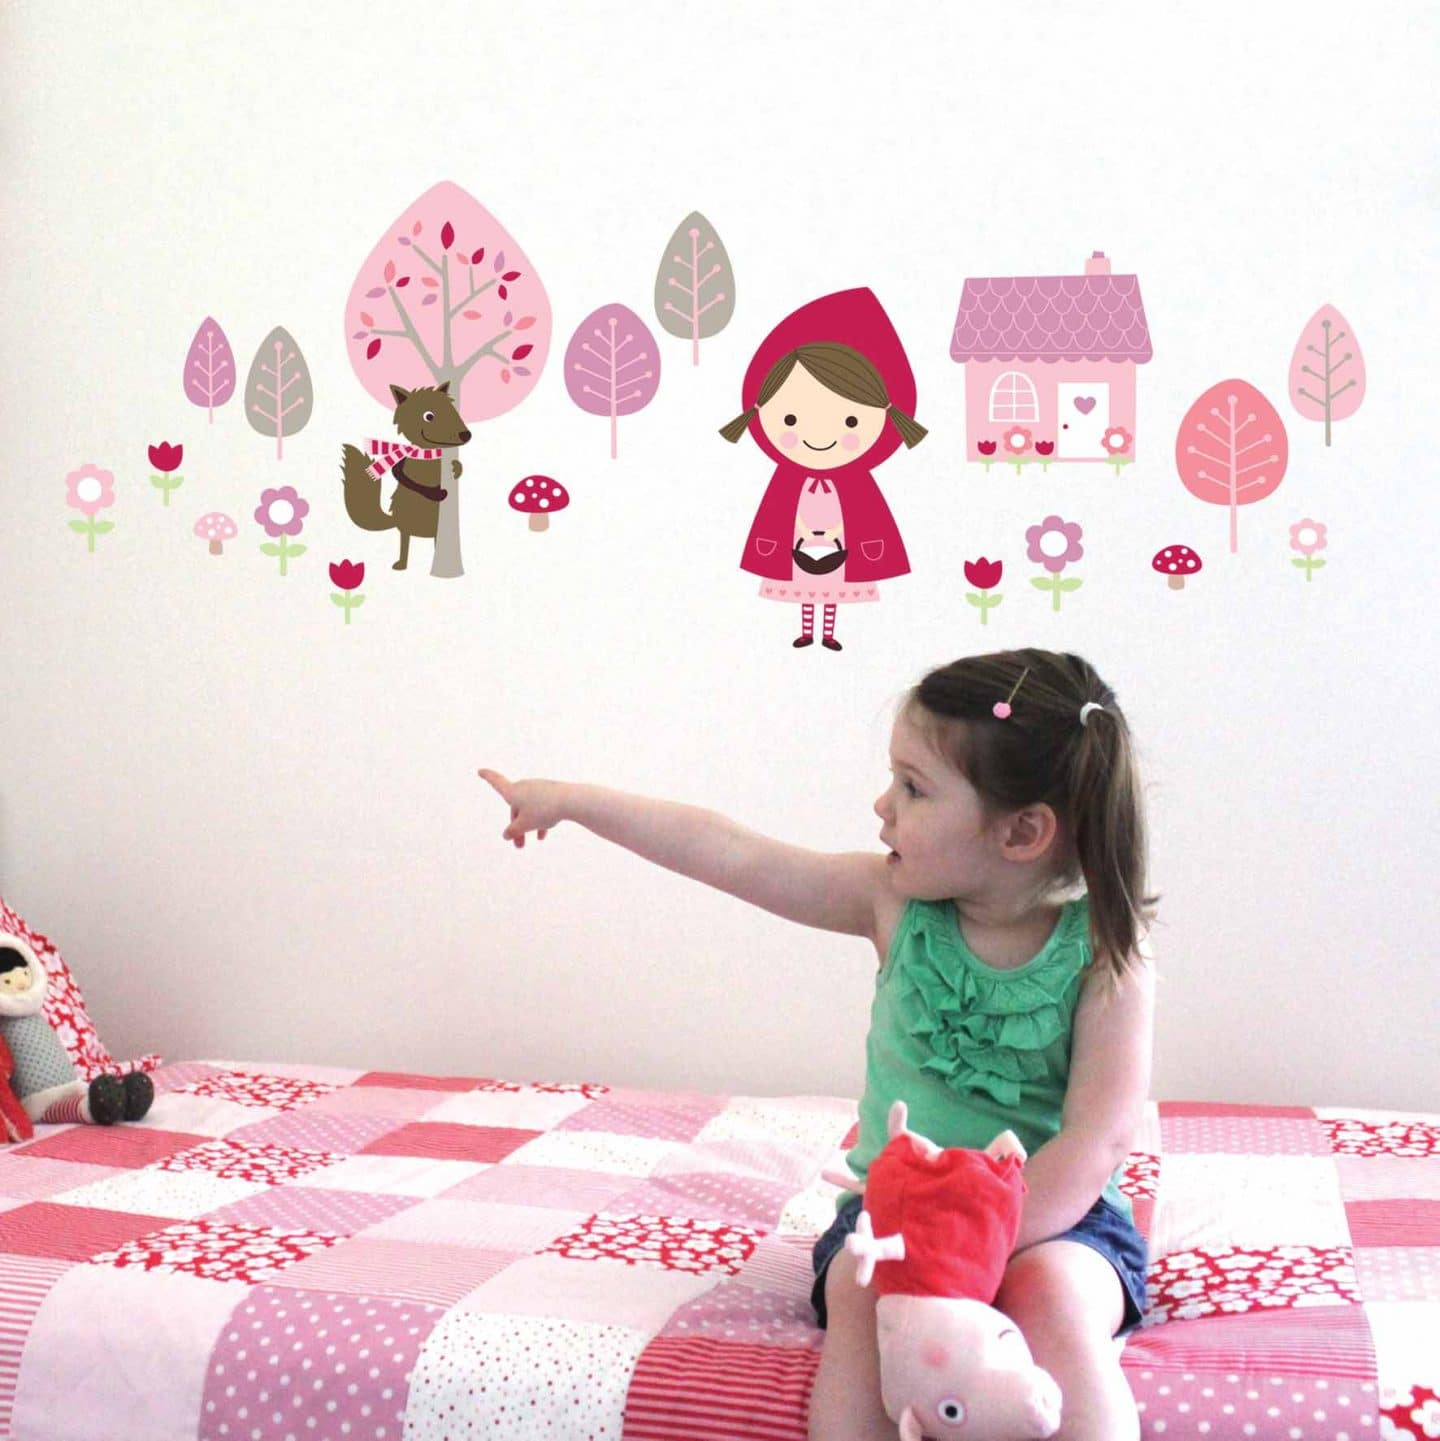 Red Riding Hood Wall Stickers - Kids Bedroom Wall Art - Lovably Me